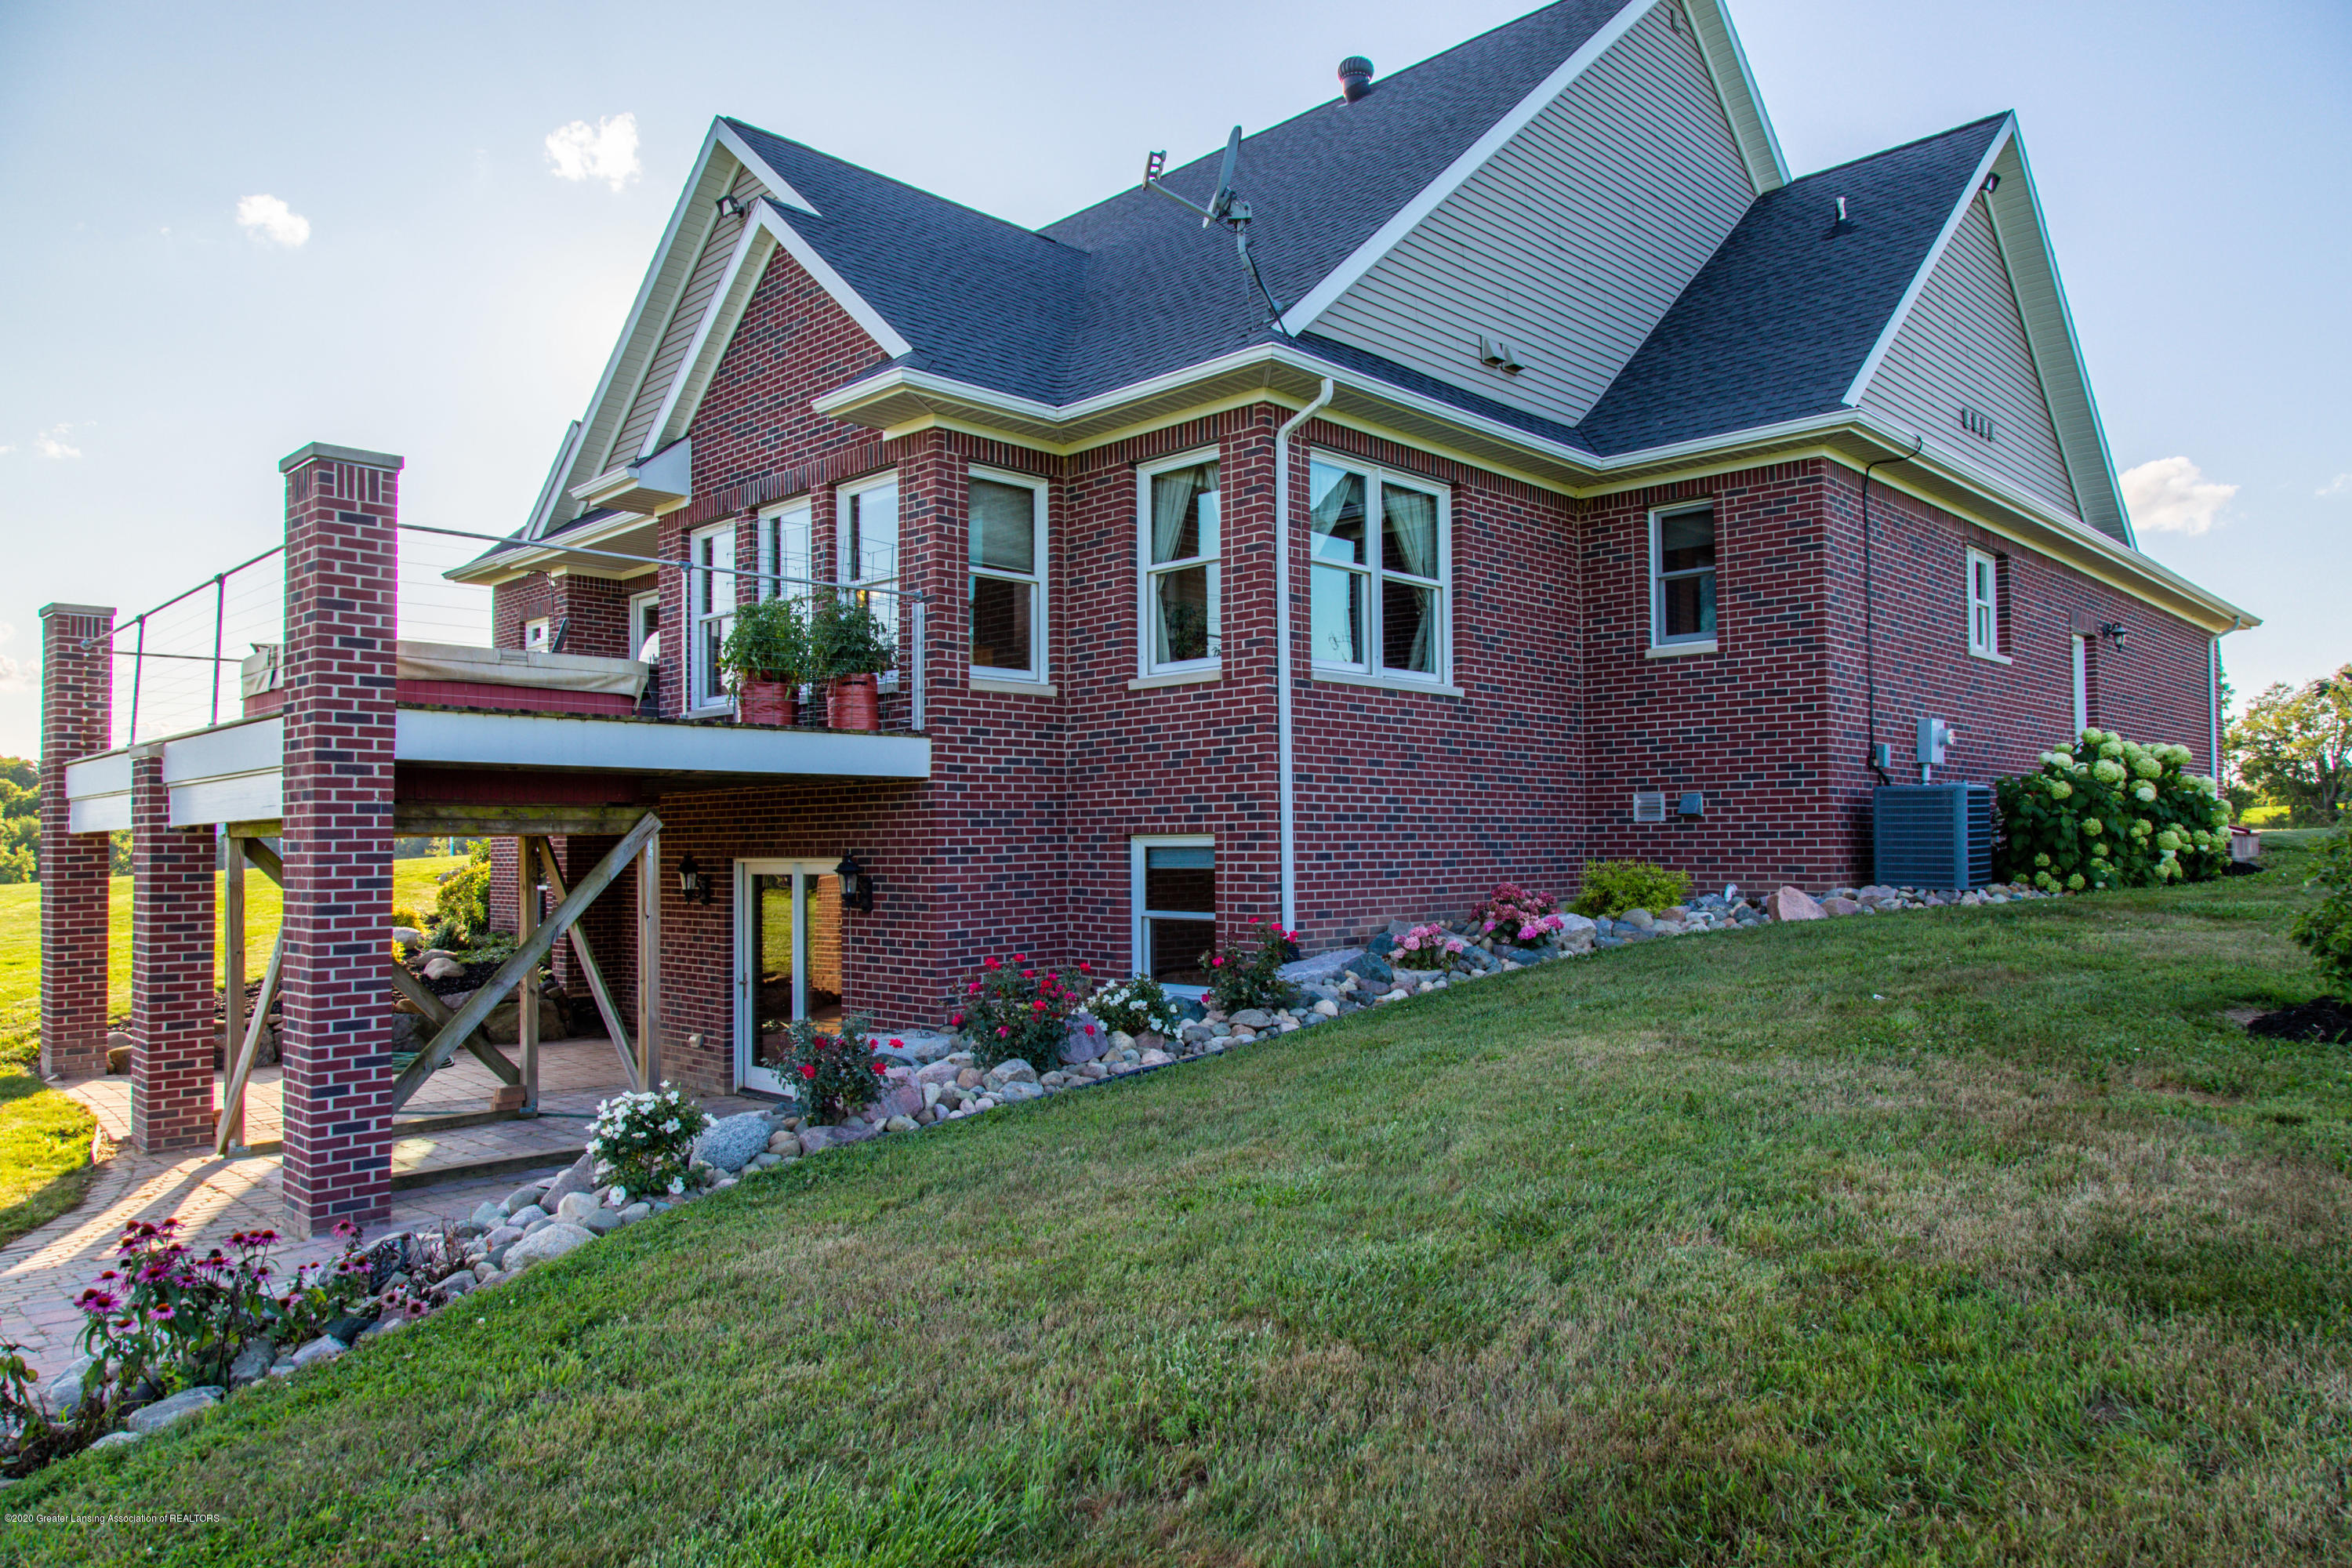 12315 Forest Hill Rd - 20190808-942A0573-HDR - 6